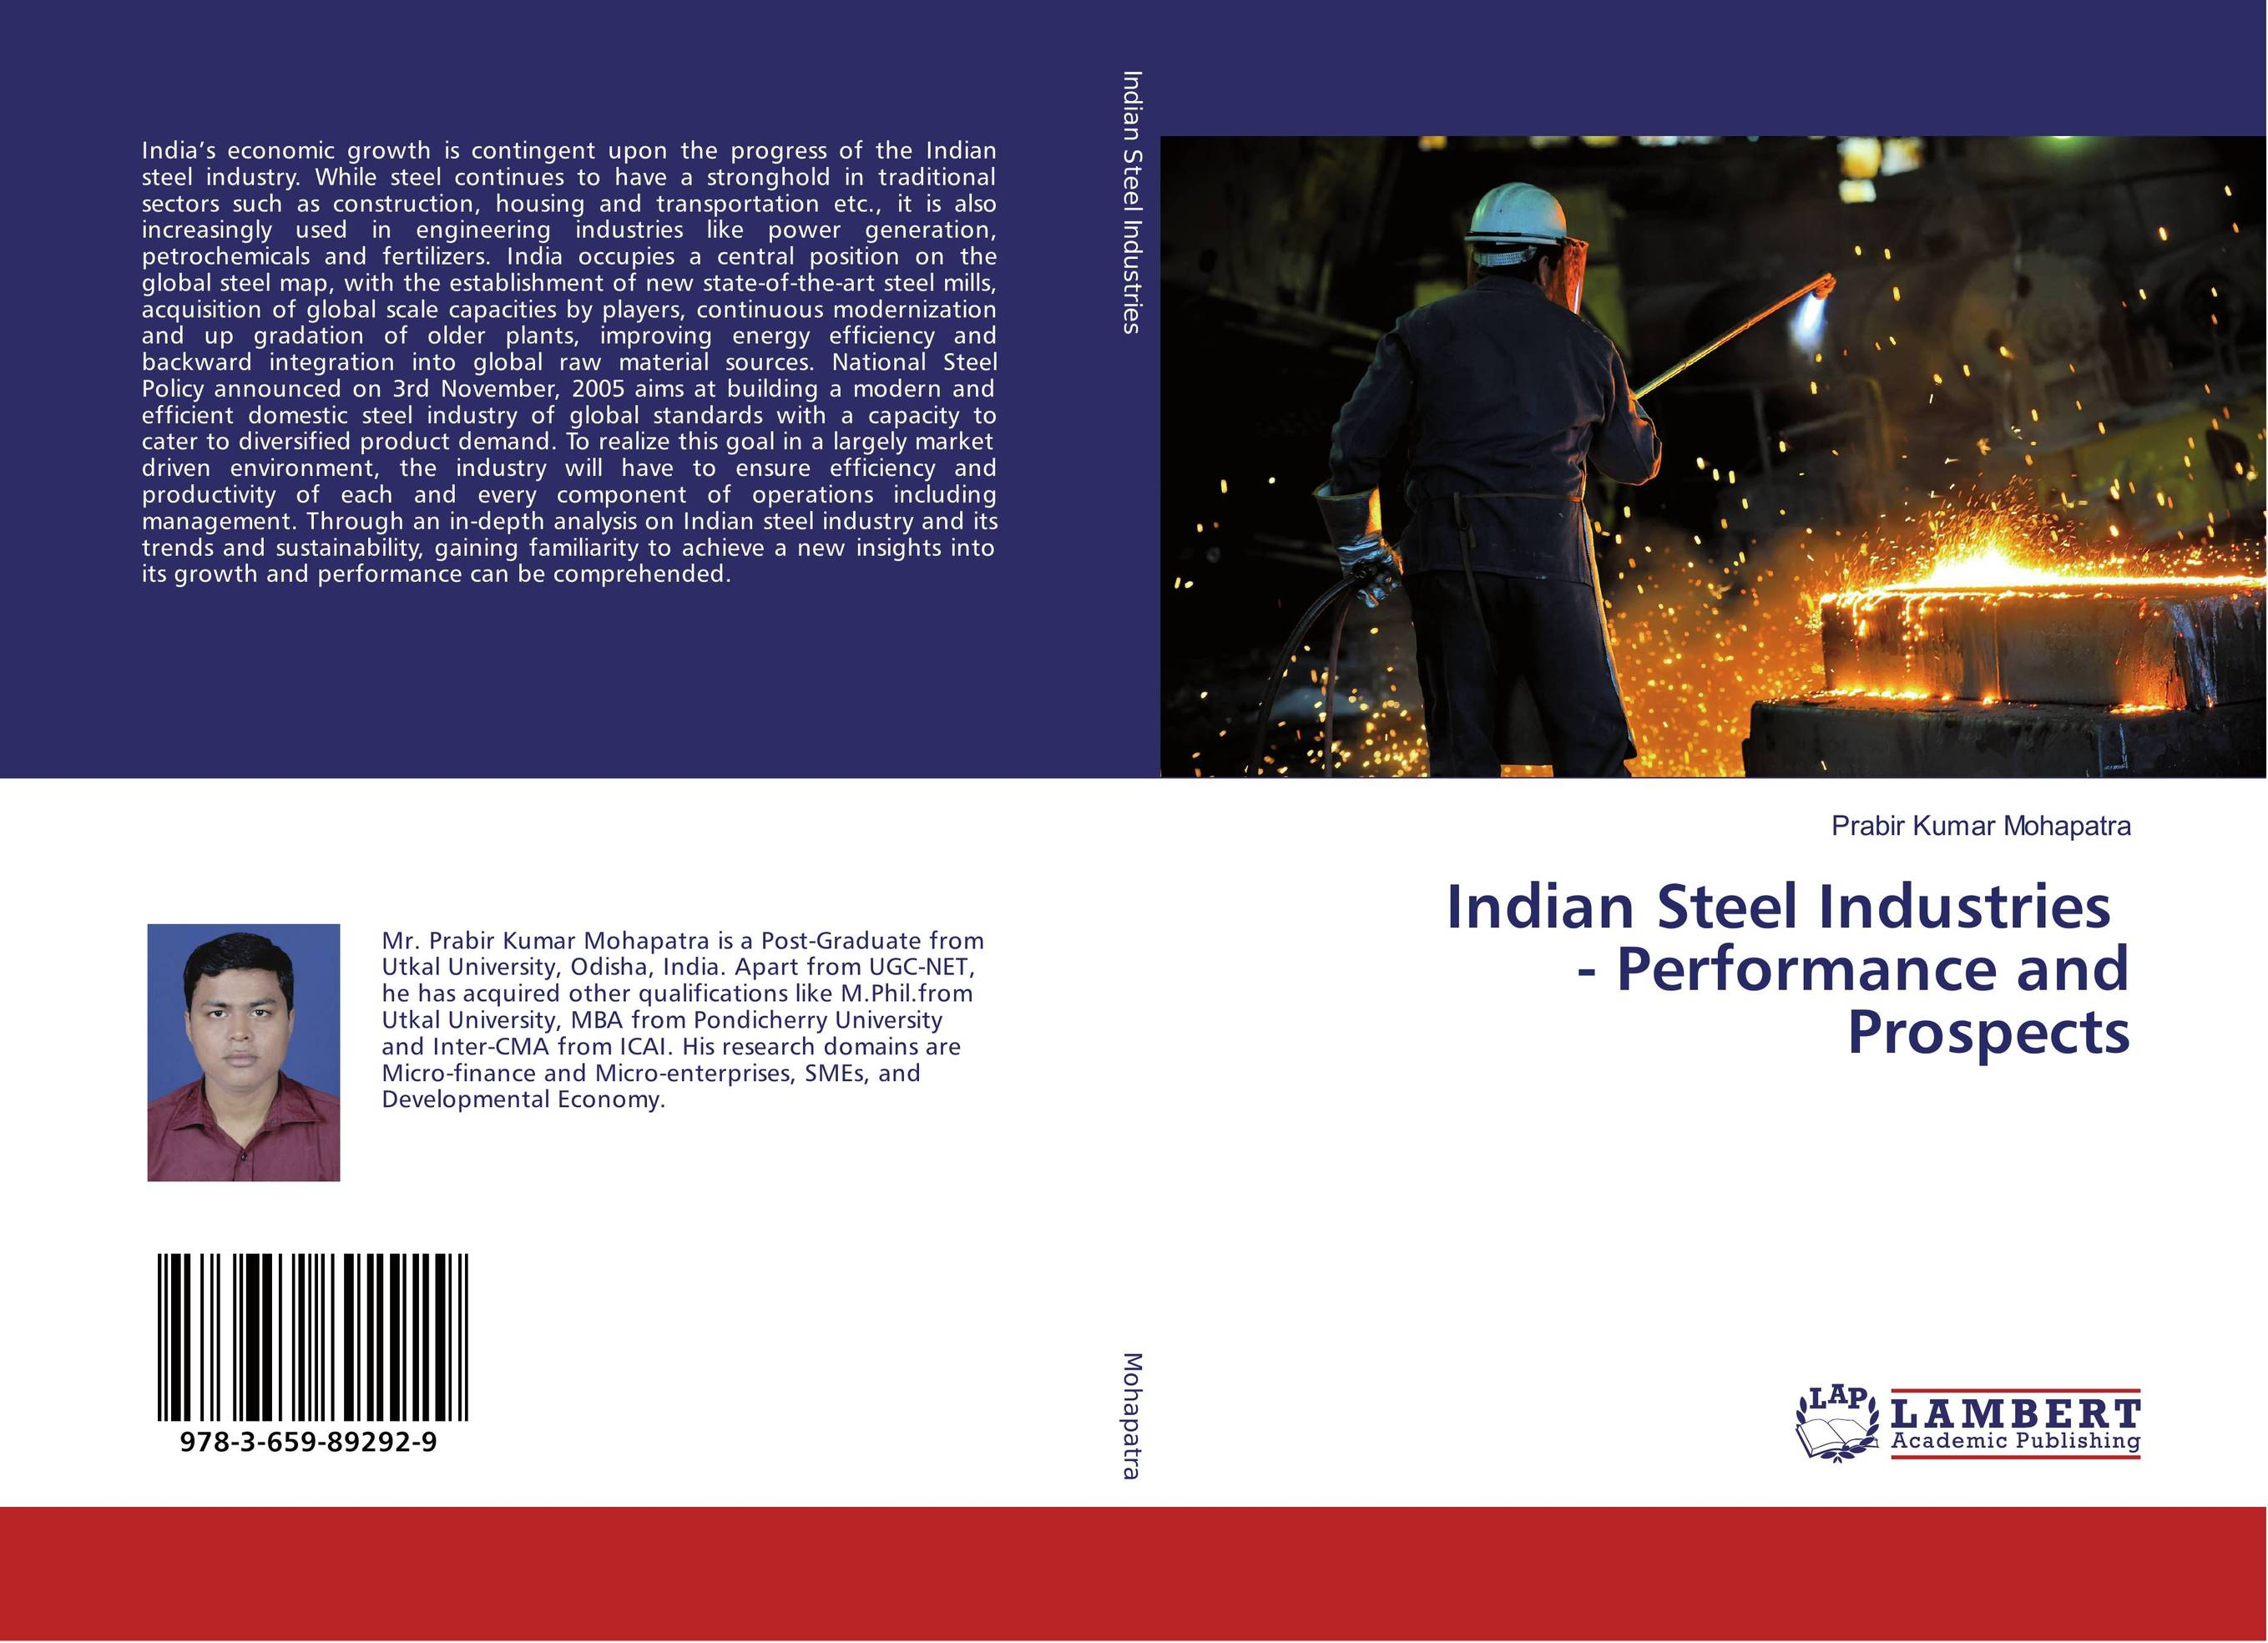 Indian Steel Industries - Performance and Prospects